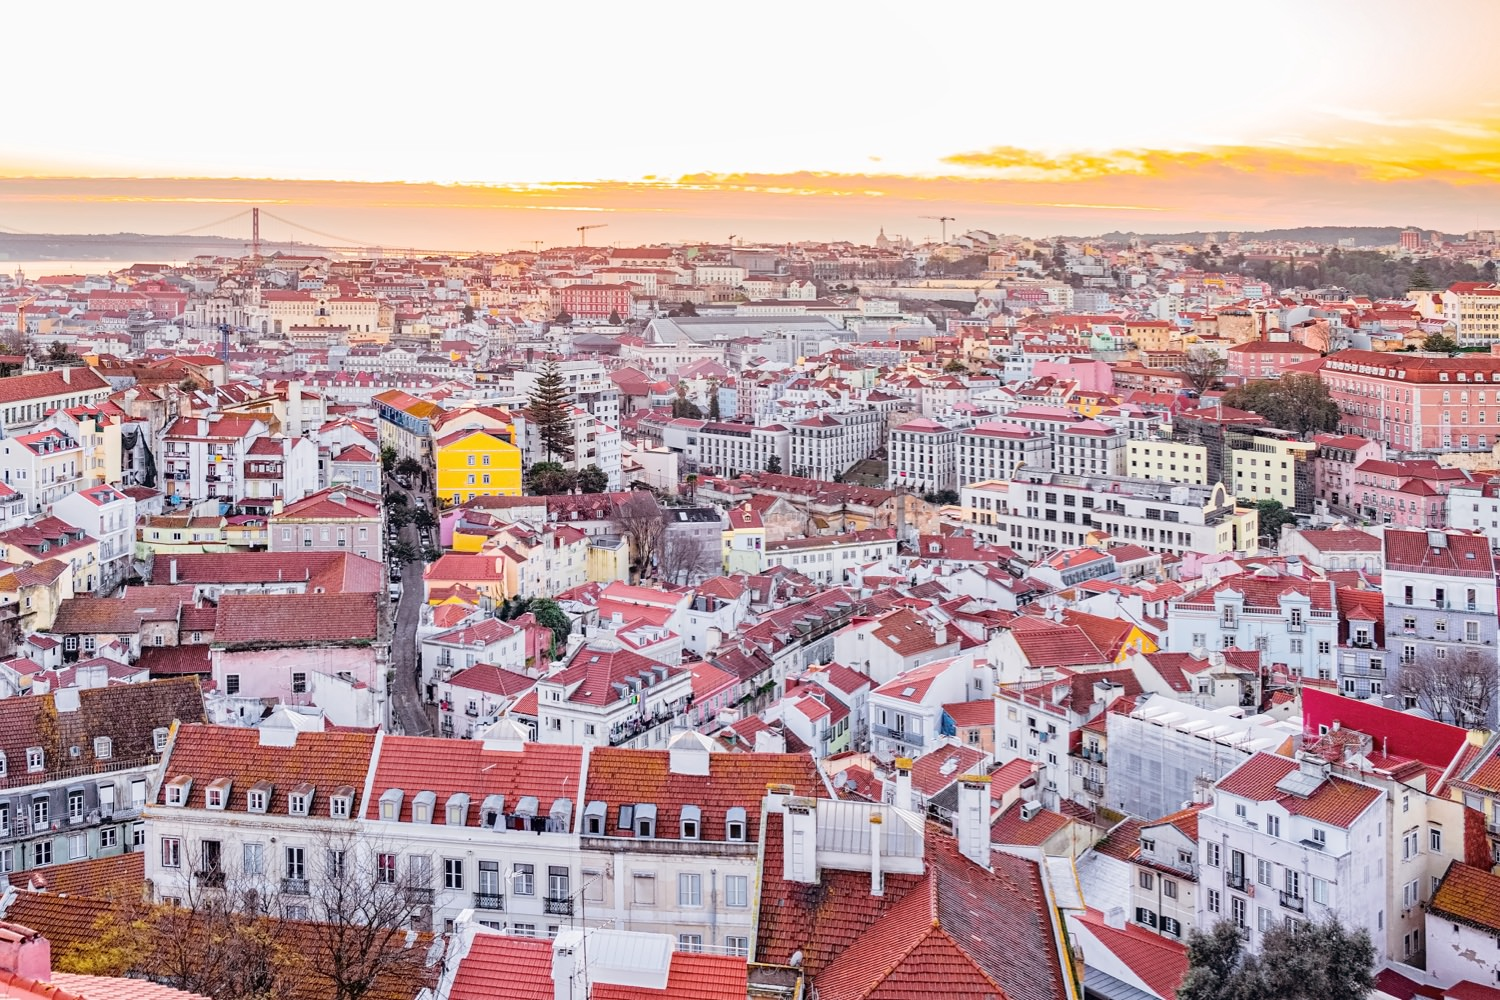 view of homes in Lisbon, Portugal